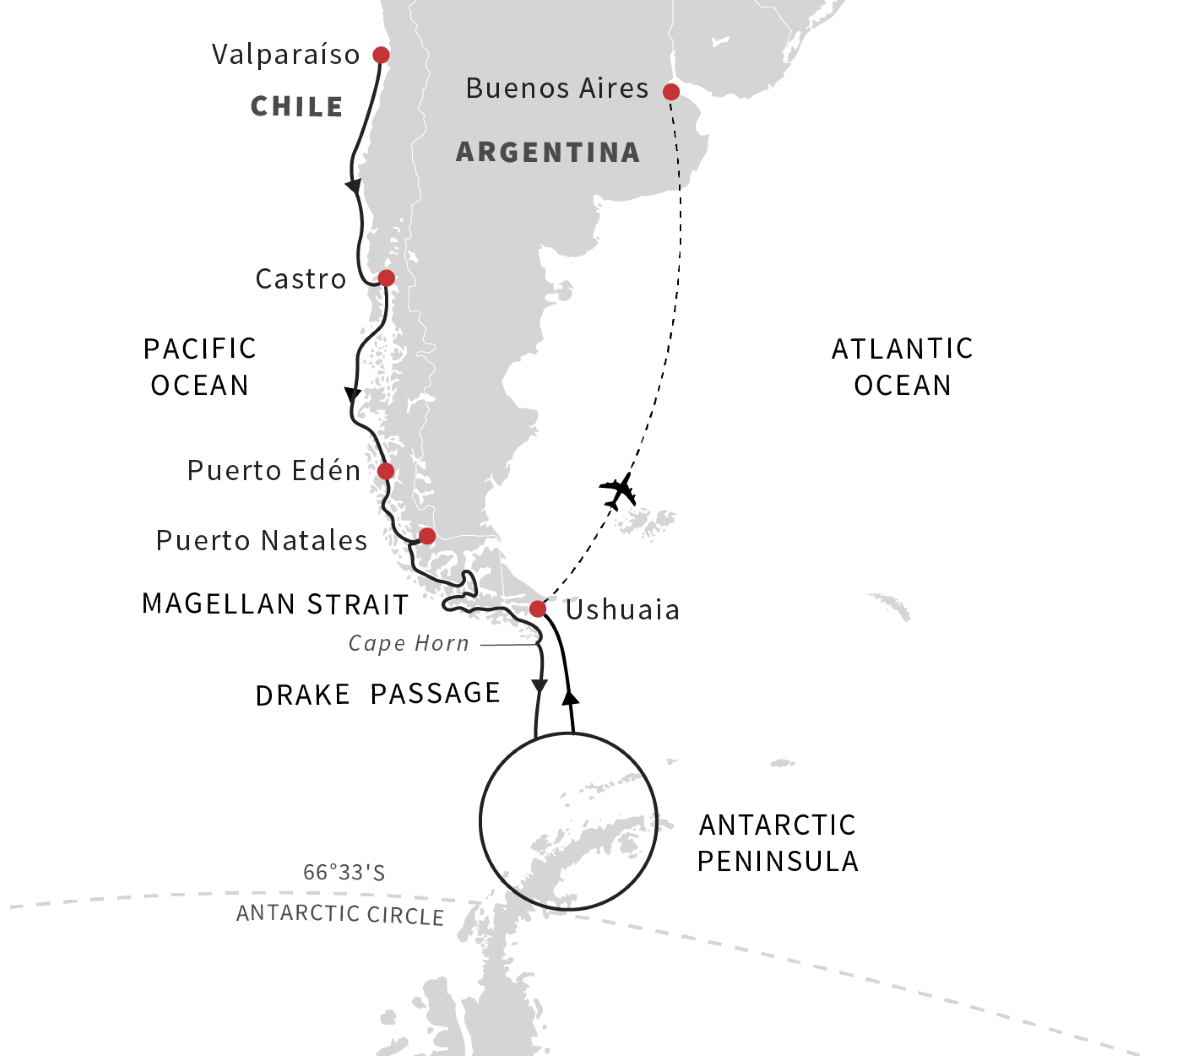 Antarctica, Patagonia, Chilean Fjords - Exploration of the Southern Highlights (Southbound)